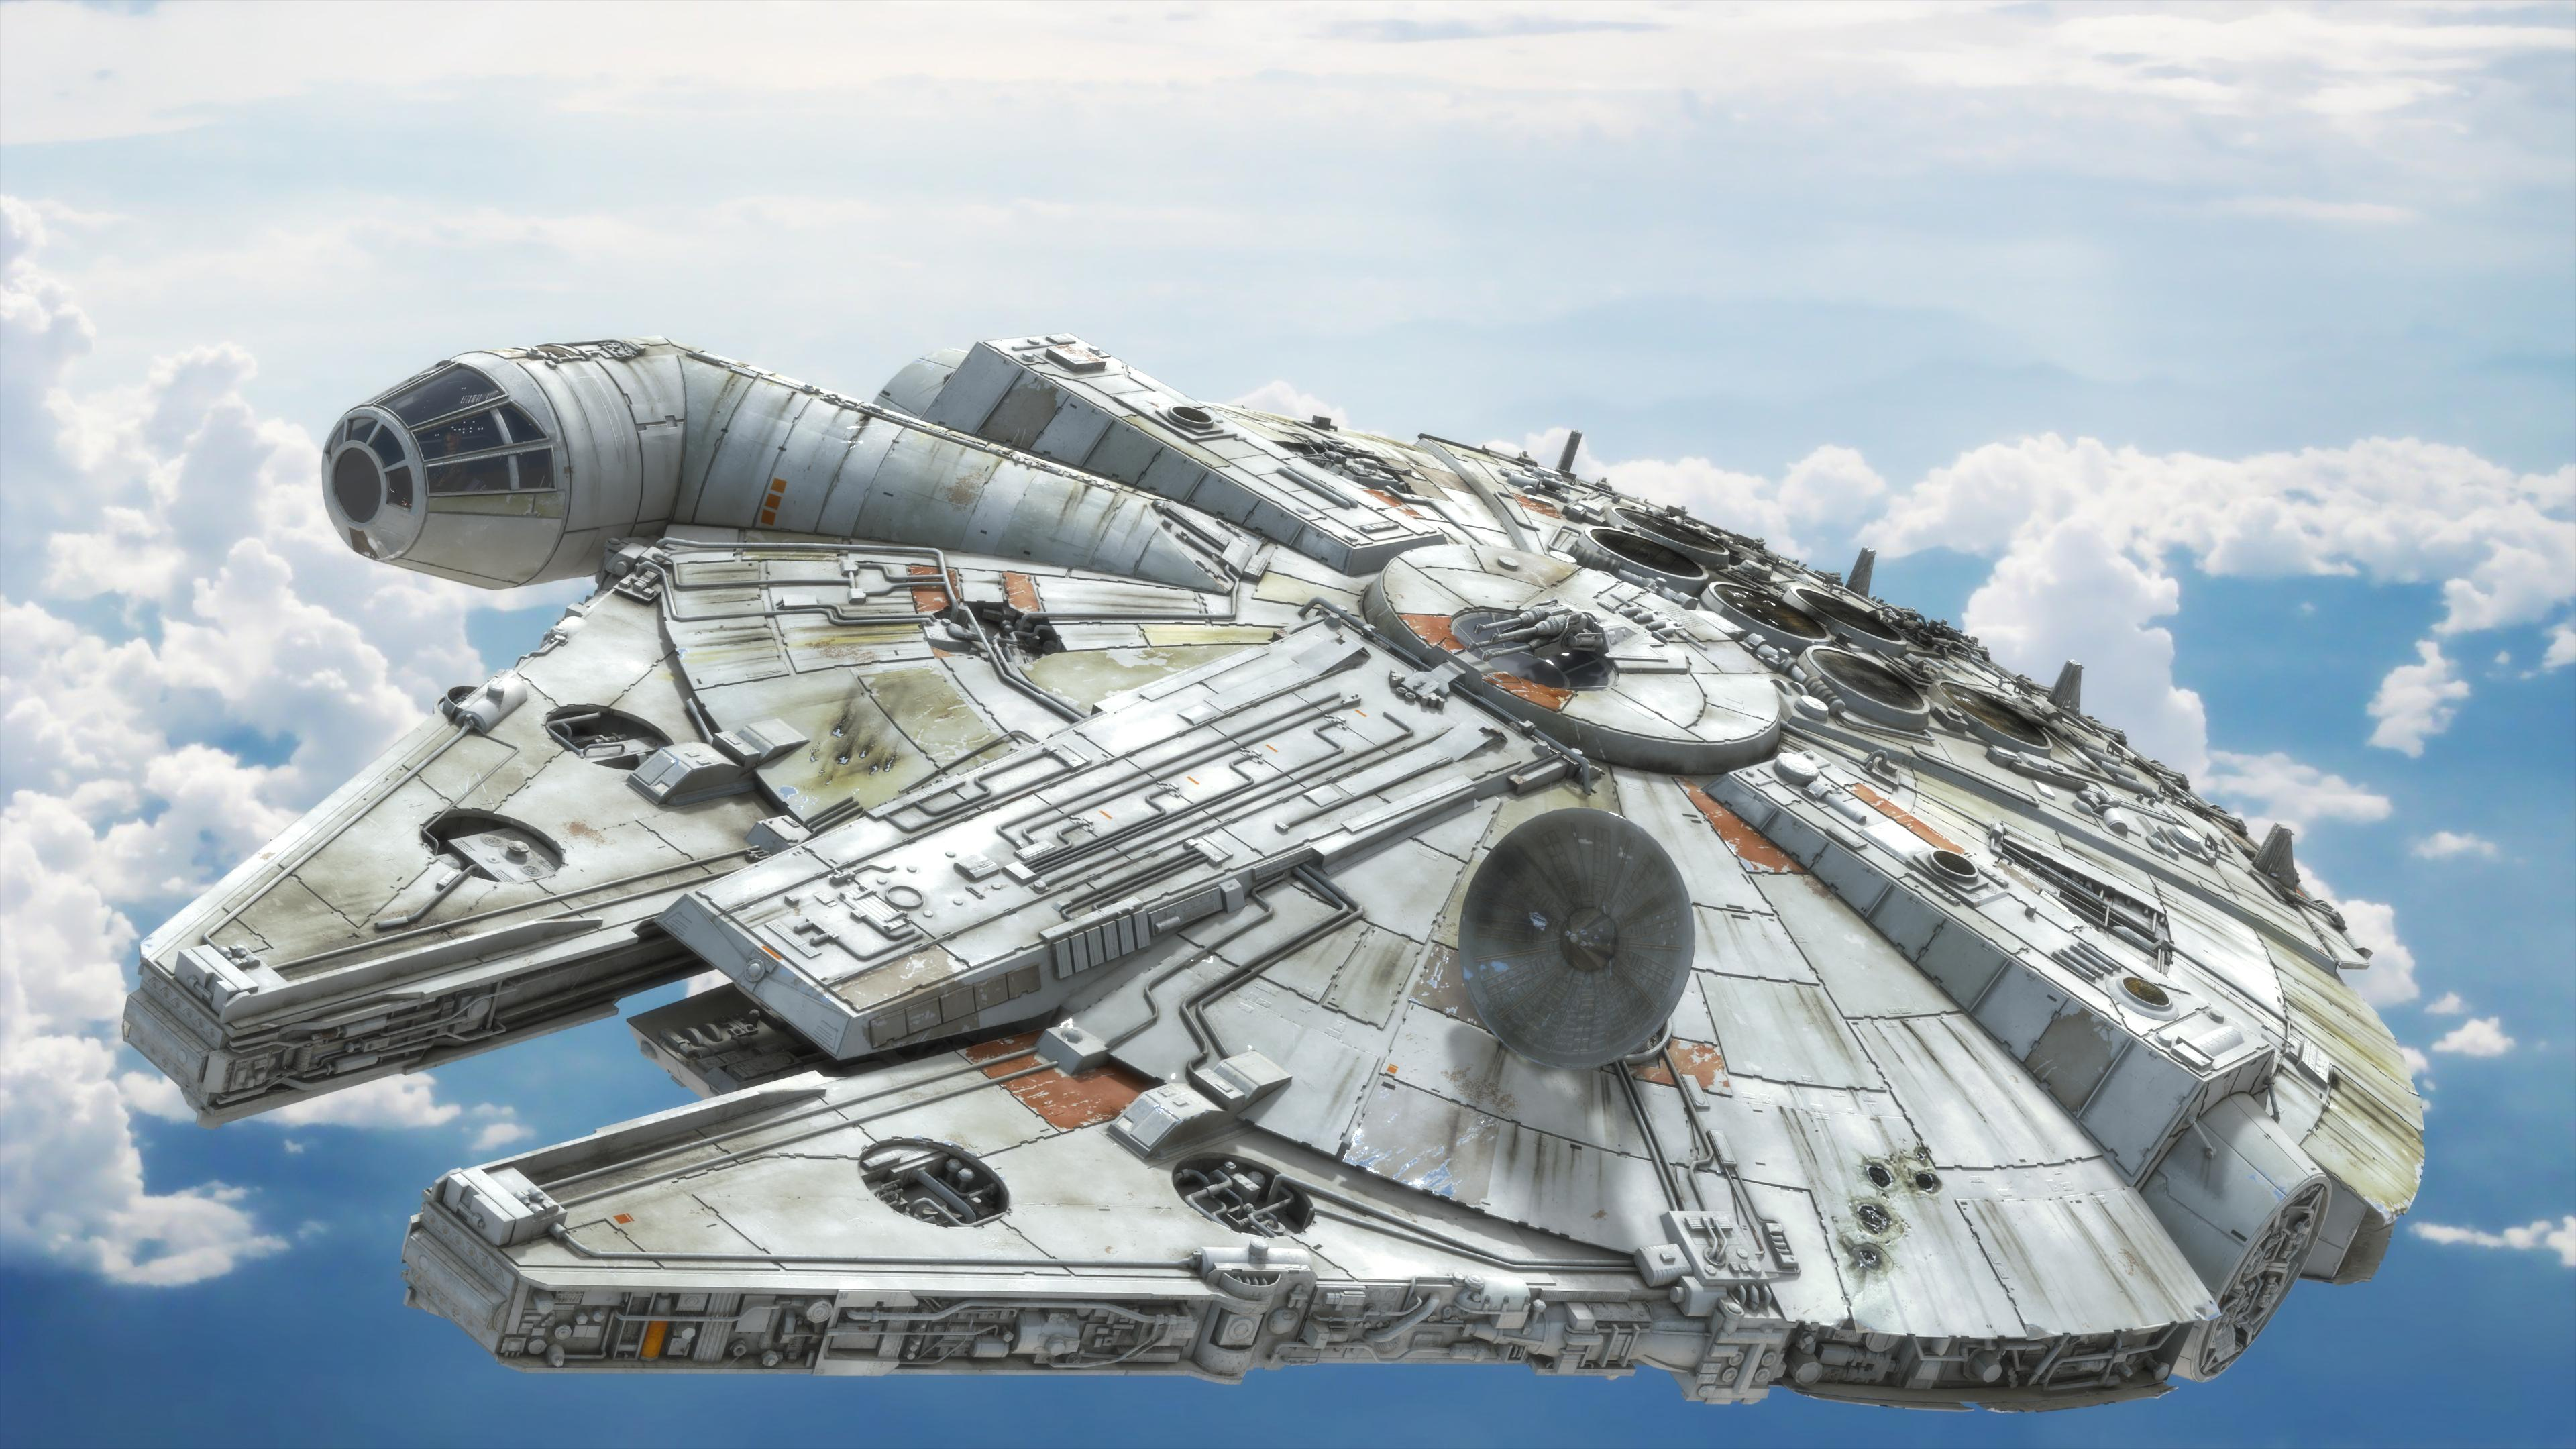 Star Wars Millennium Falcon Wallpaper Posted By Sarah Tremblay